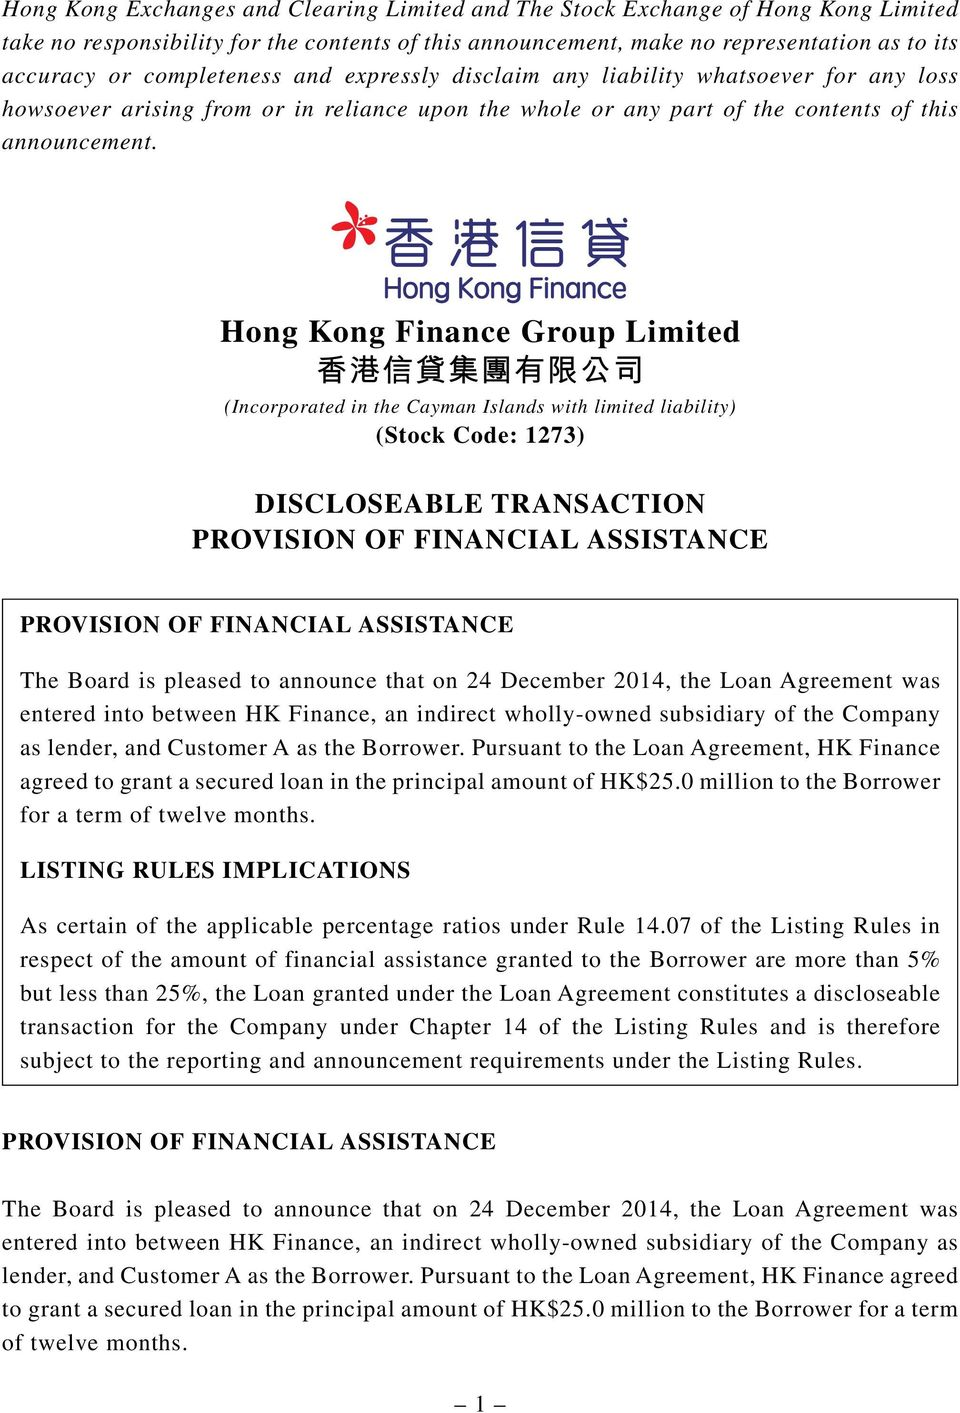 Hong Kong Finance Group Limited (Incorporated in the Cayman Islands with limited liability) (Stock Code: 1273) DISCLOSEABLE TRANSACTION The Board is pleased to announce that on 24 December 2014, the